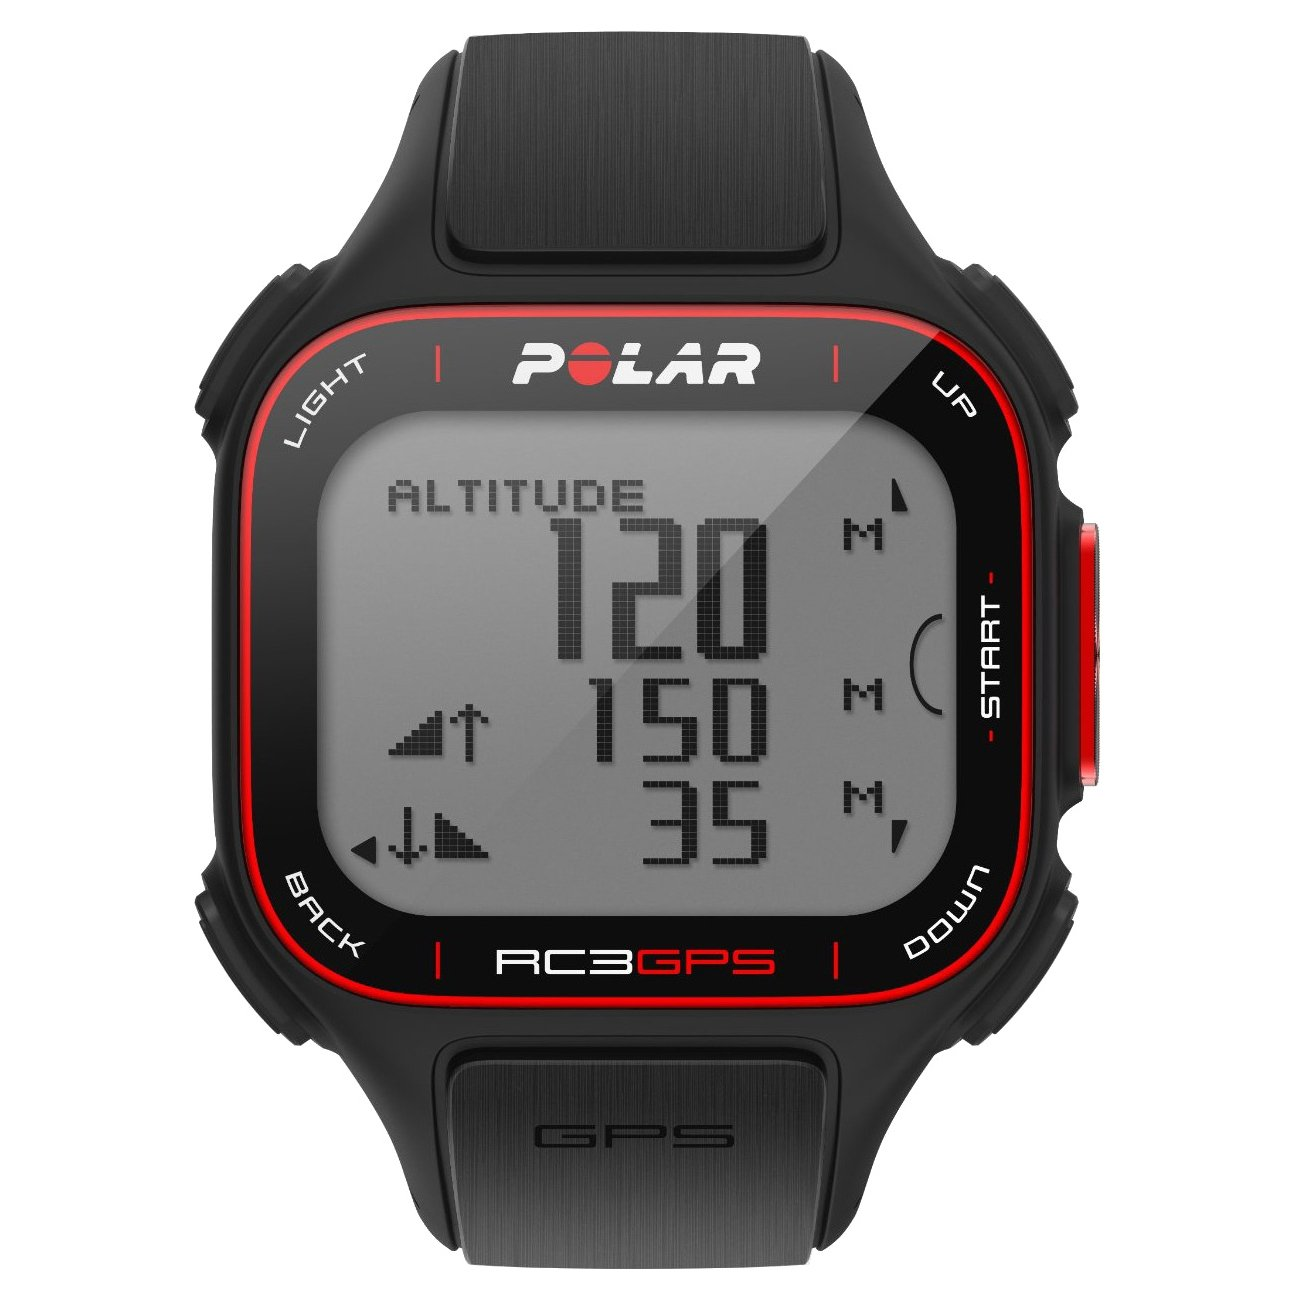 90048169 RC3 w/ GPS Includes Altitude Feature Polar Heart Rate Monitor